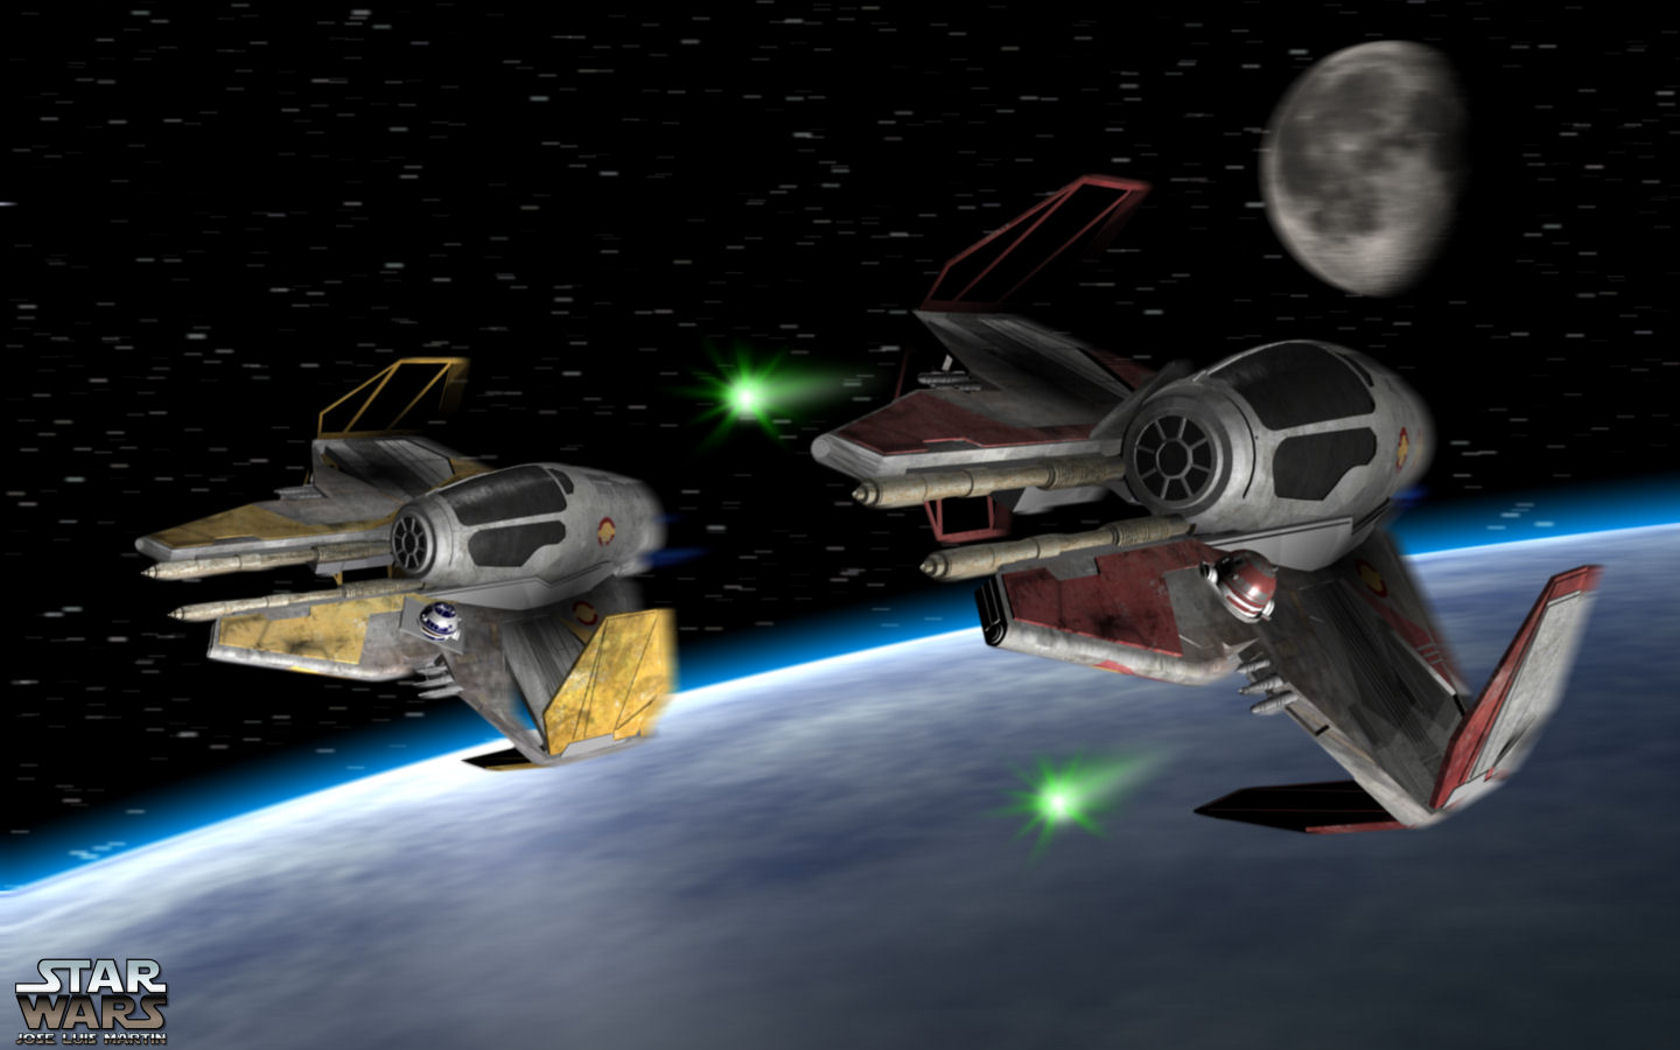 Star Wars images Jedi Fighters wallpaper photos 15486193 1680x1050